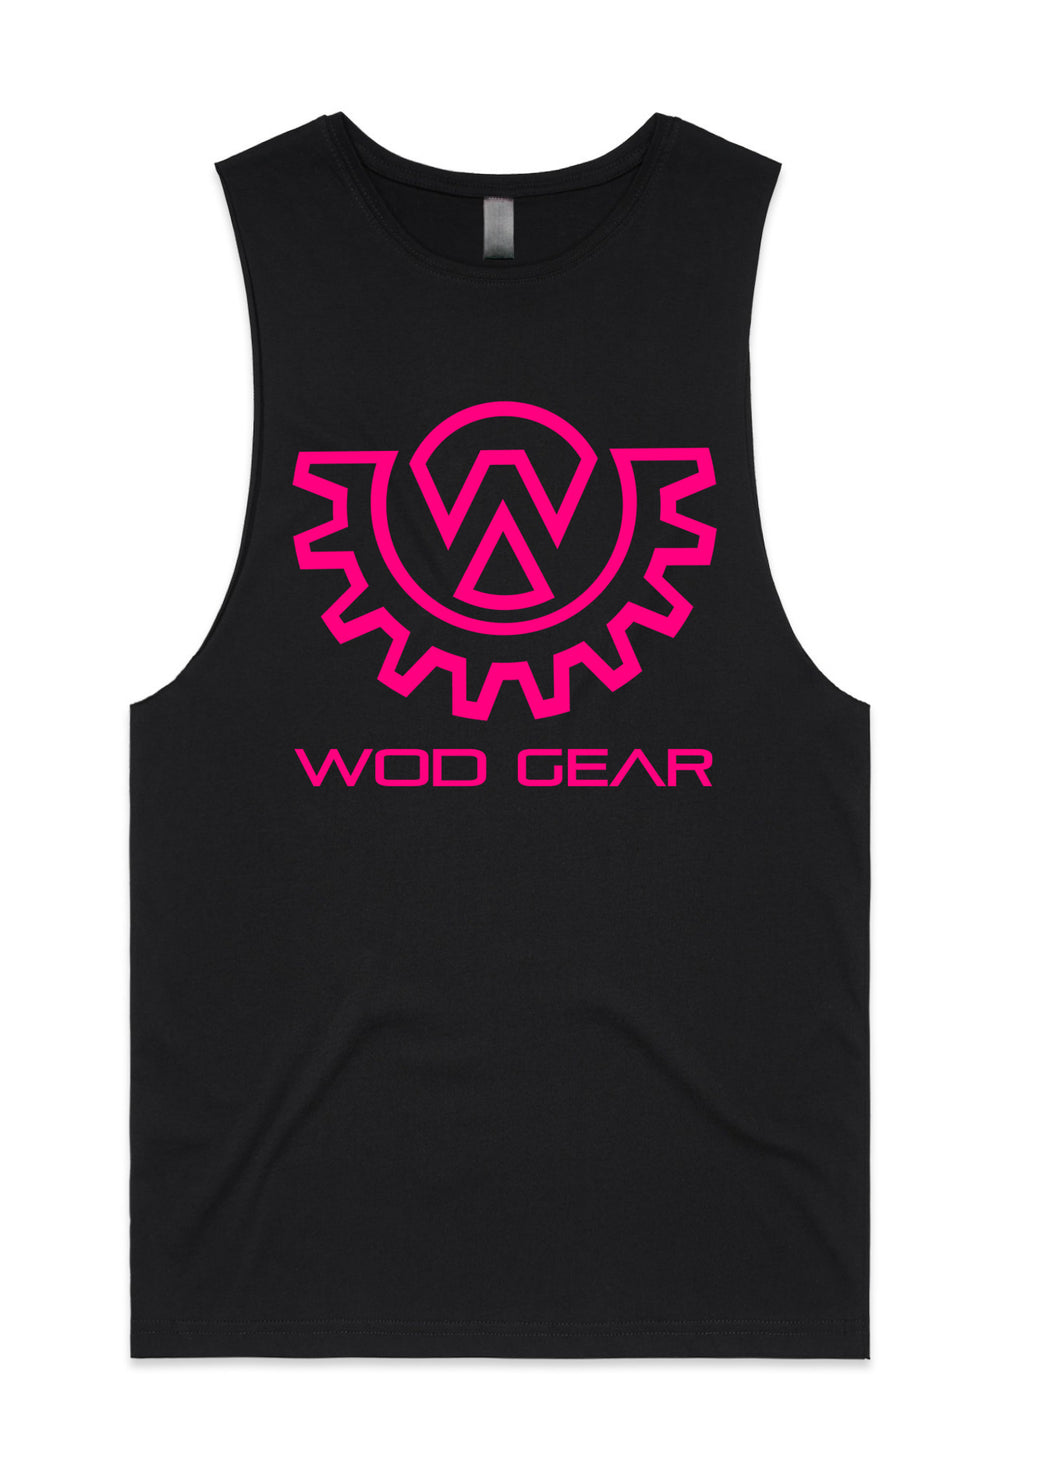 Wod Gear Women's Muscle Tank Black/Pink